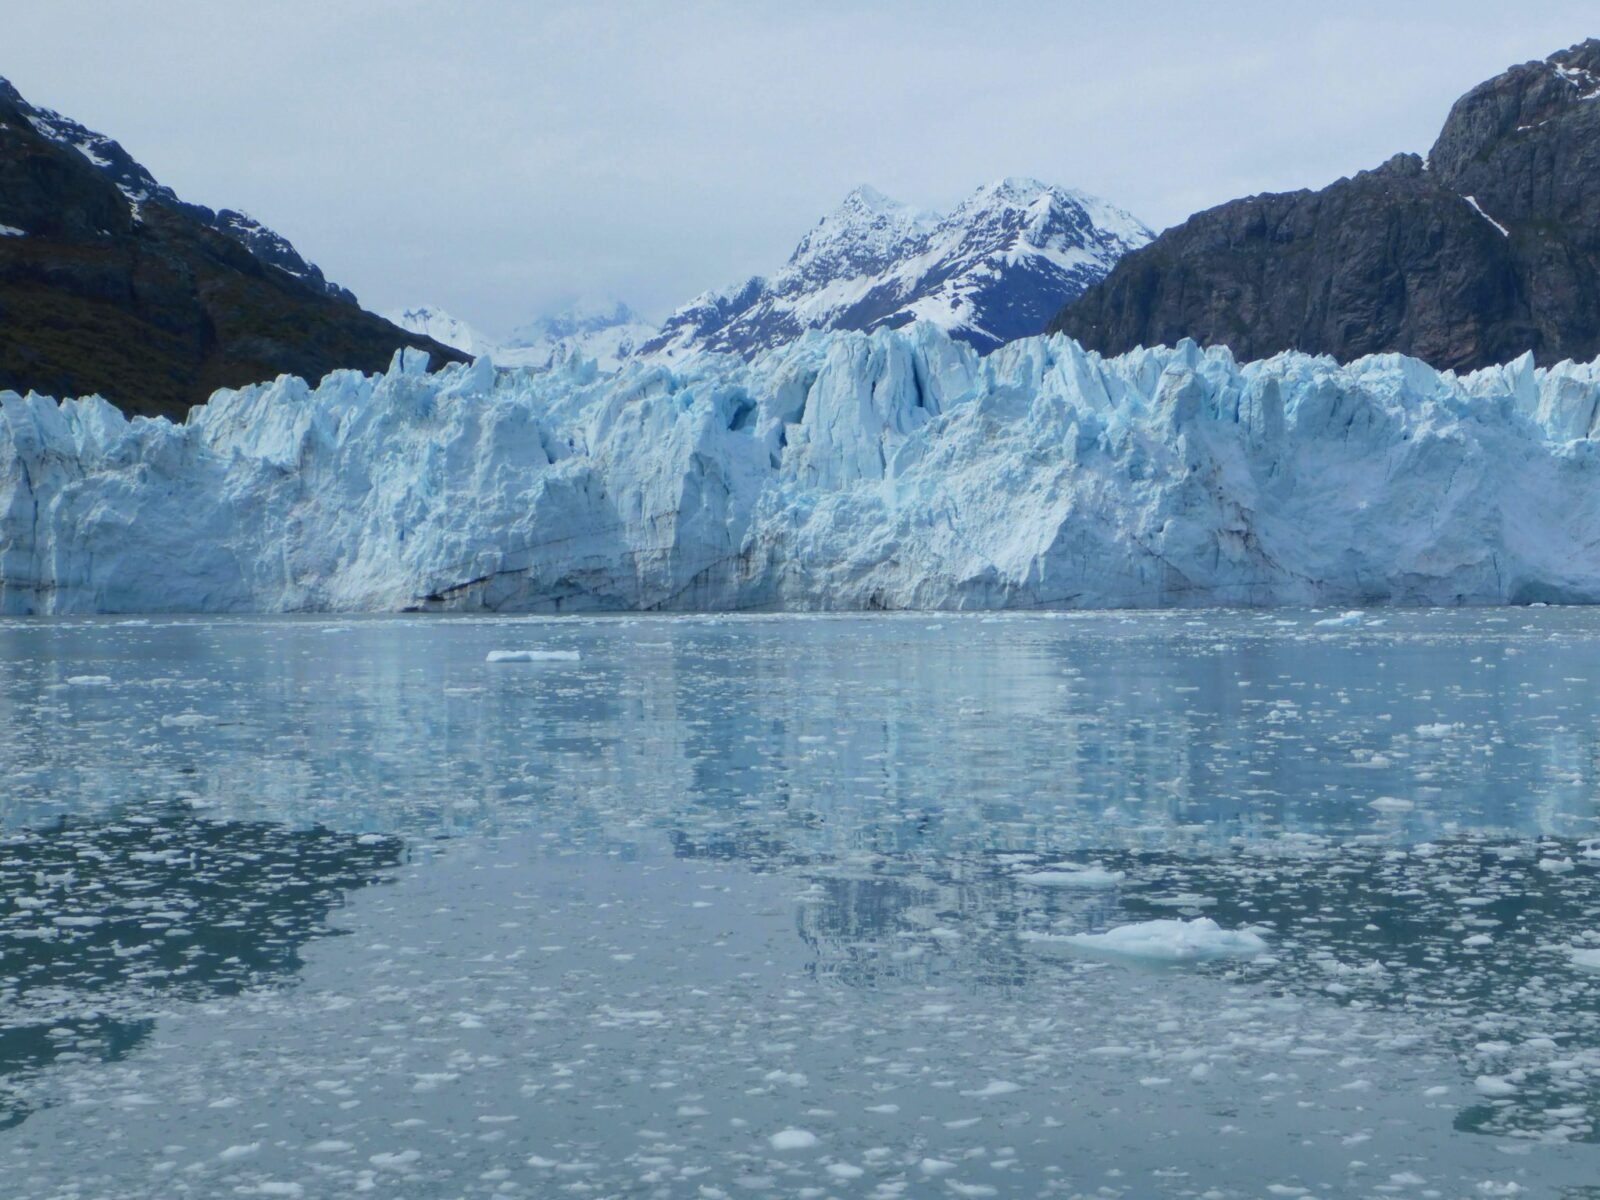 Mountains and a glacier are reflected in the water which has lots of little pieces of ice in it on a visit to Glacier Bay national park